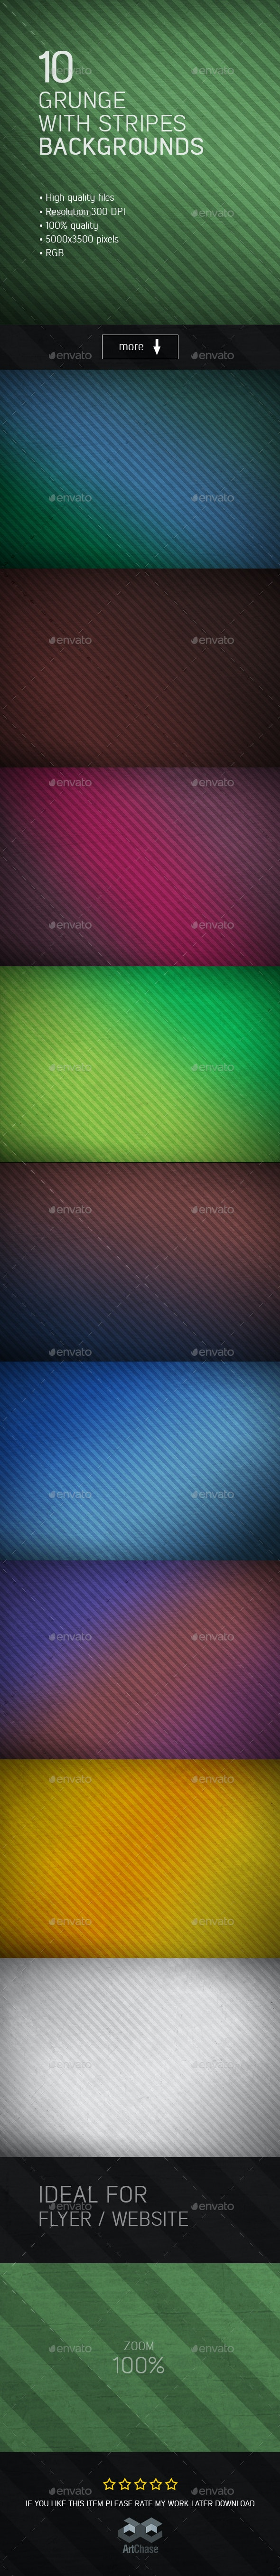 10 Grunge with Stripes Backgrounds - Urban Backgrounds